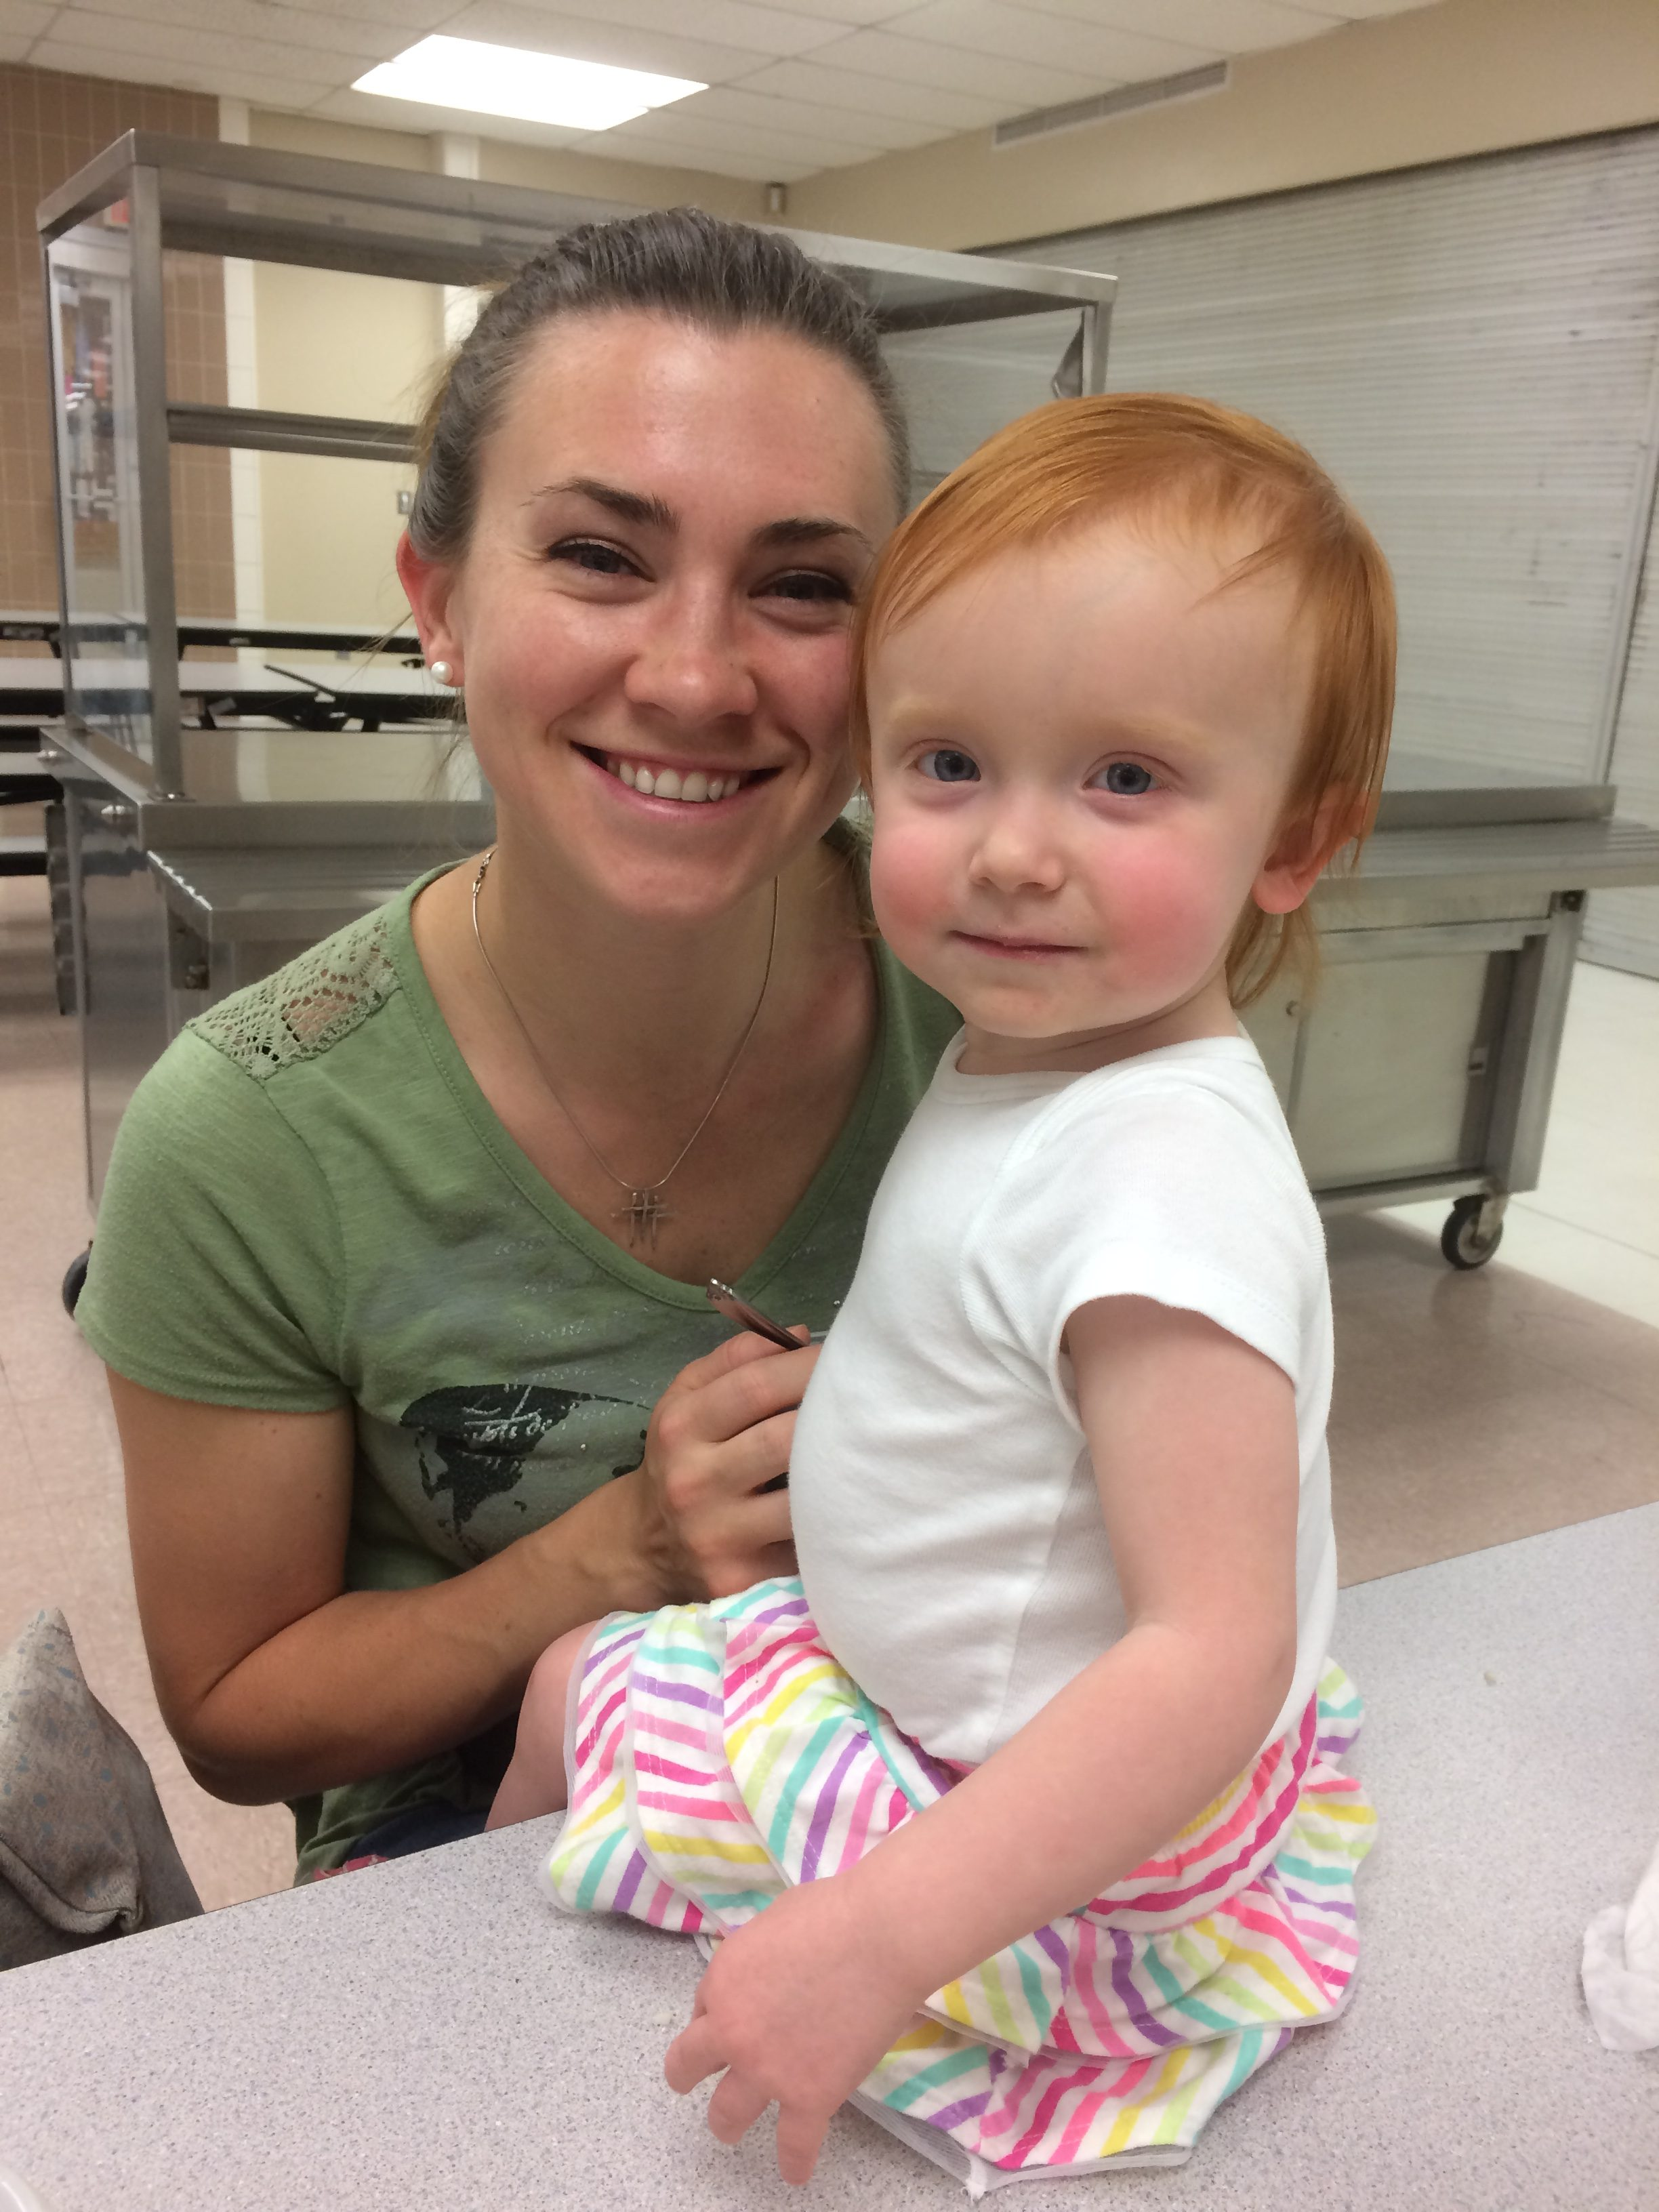 Photo of Presenter Blair Buselli's wife and child, Aurora and Ella, at the SEEDS DIY Solar Installation workshop.